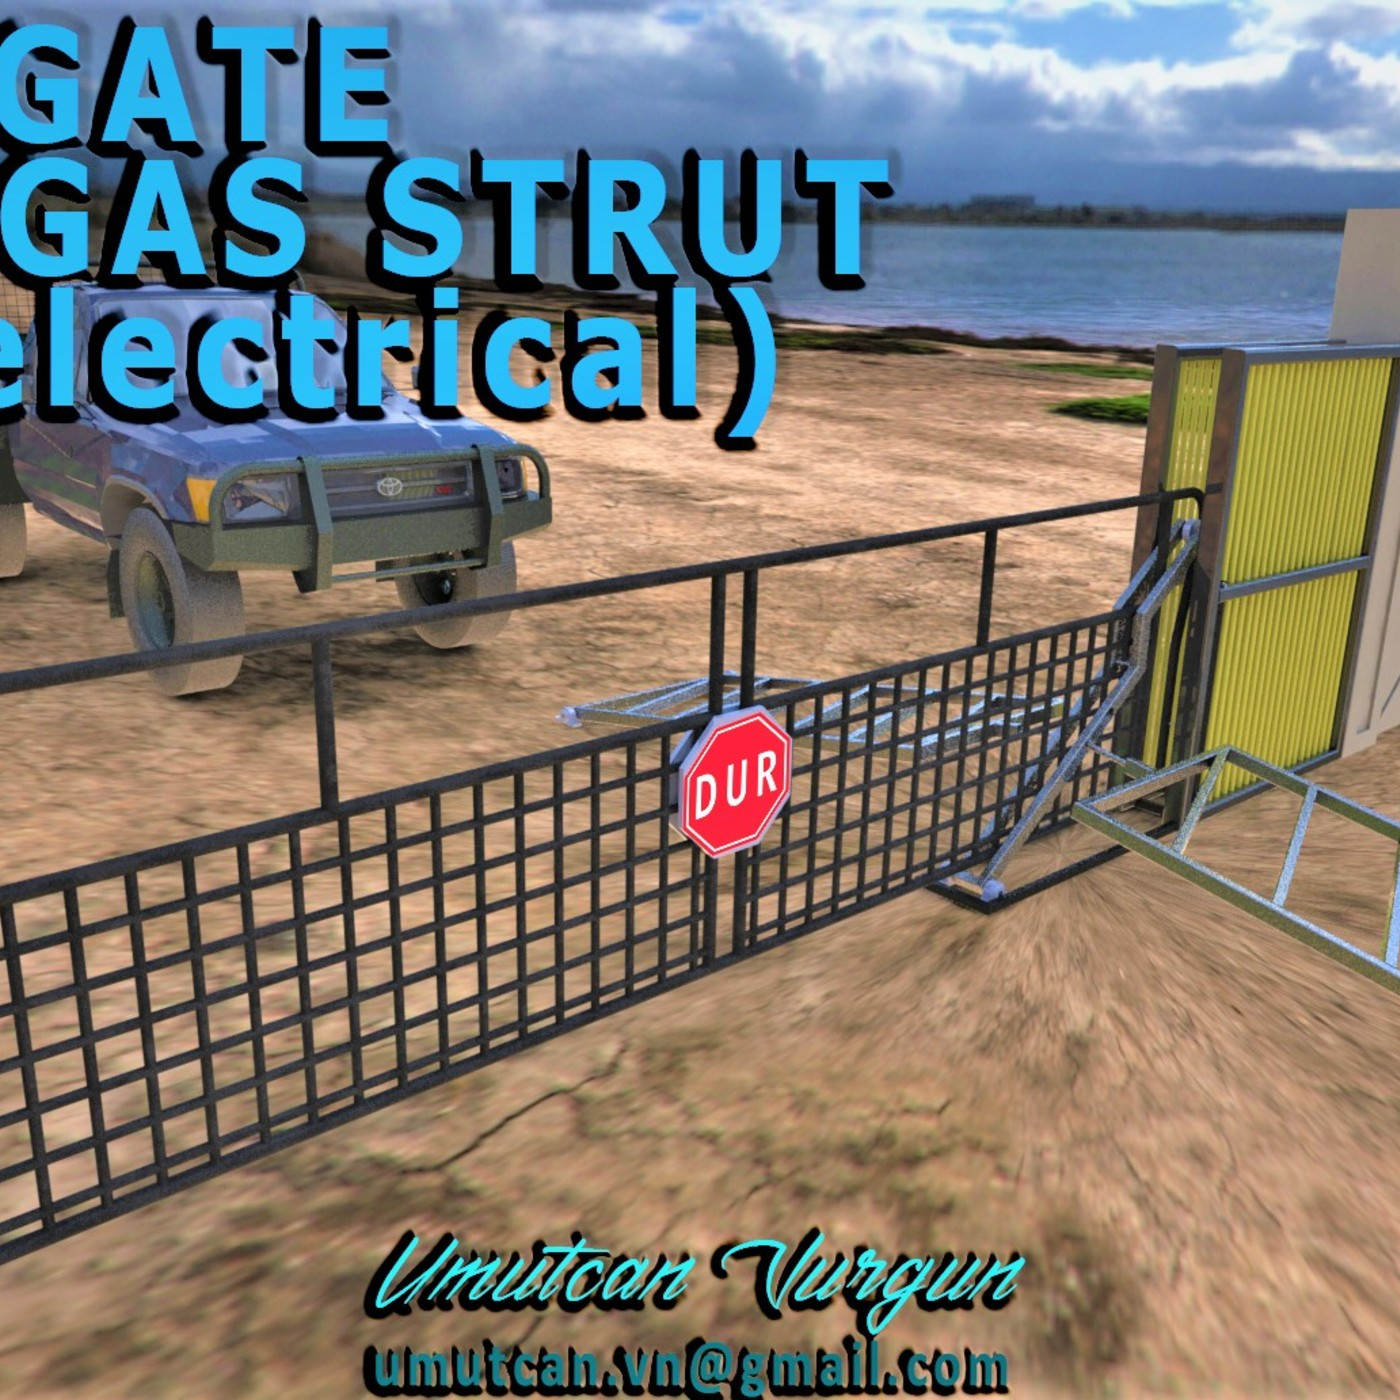 AUTOGATE (NON ELECTRICAL) with gas struct